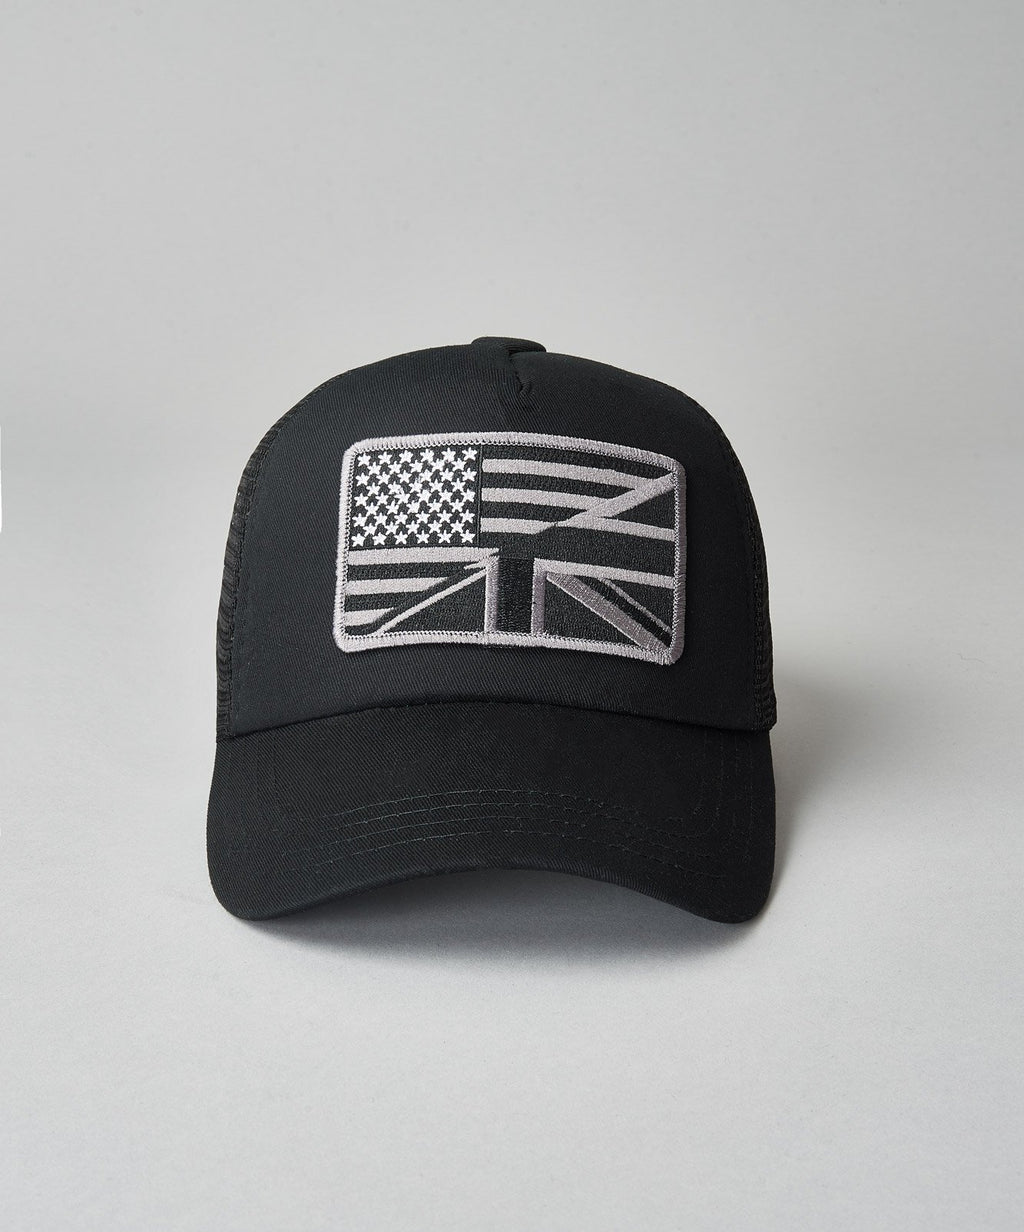 CCCL x Reorg US/UK Trucker Cap